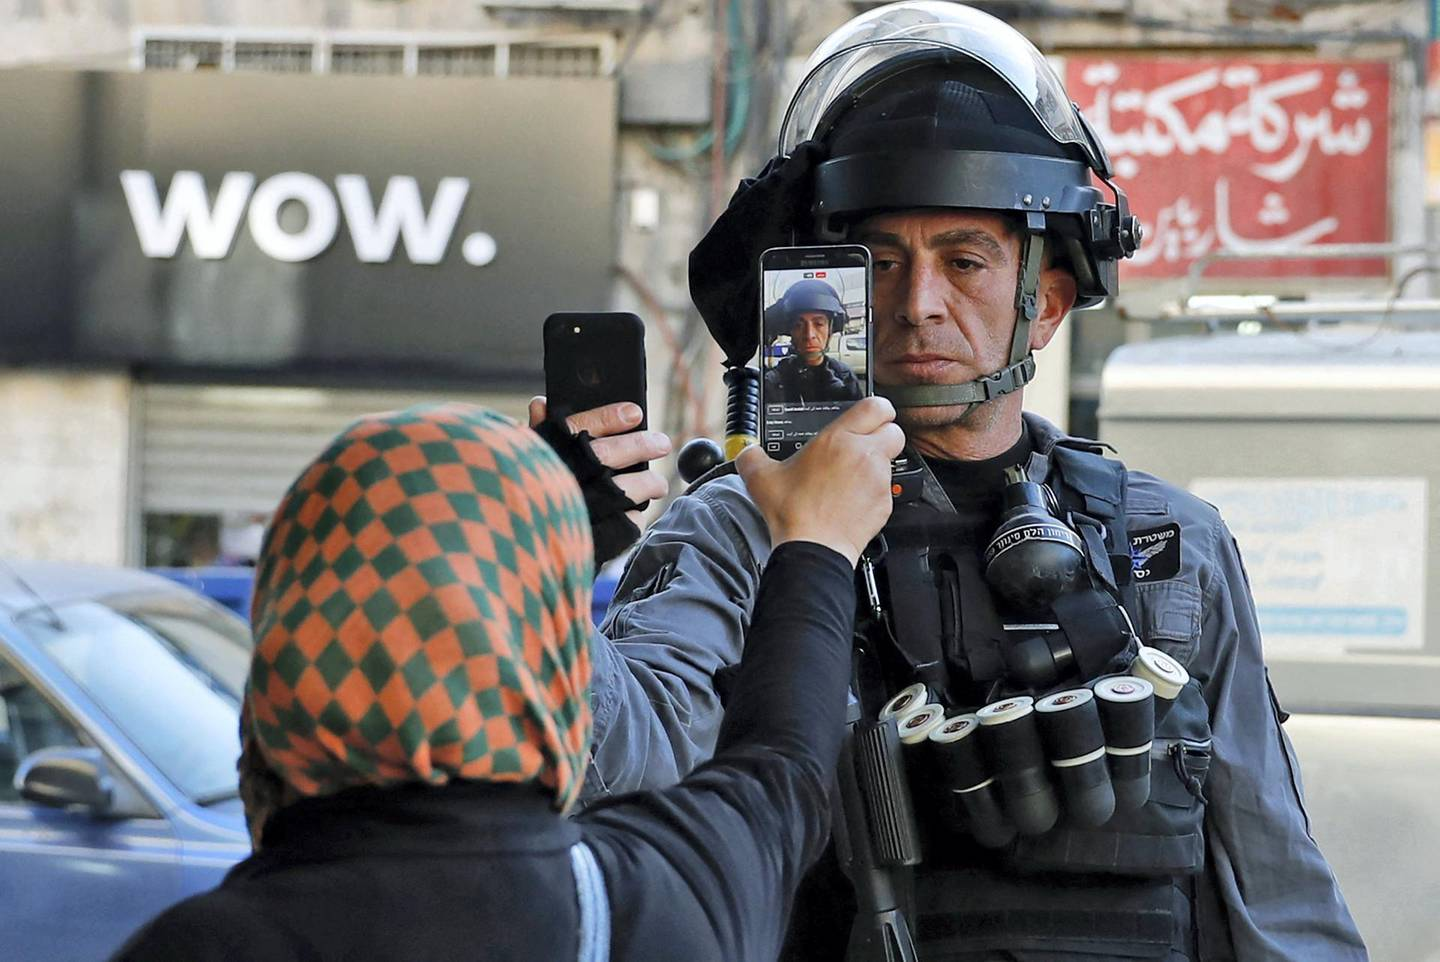 A Palestinian woman takes a picture of a member of the Israeli security forces as he takes her picture in a street in Jerusalem on December 16, 2017, as demonstrations continue to flare in the Middle East and elsewhere over the US president's declaration of Jerusalem as Israel's capital. (Photo by AHMAD GHARABLI / AFP)